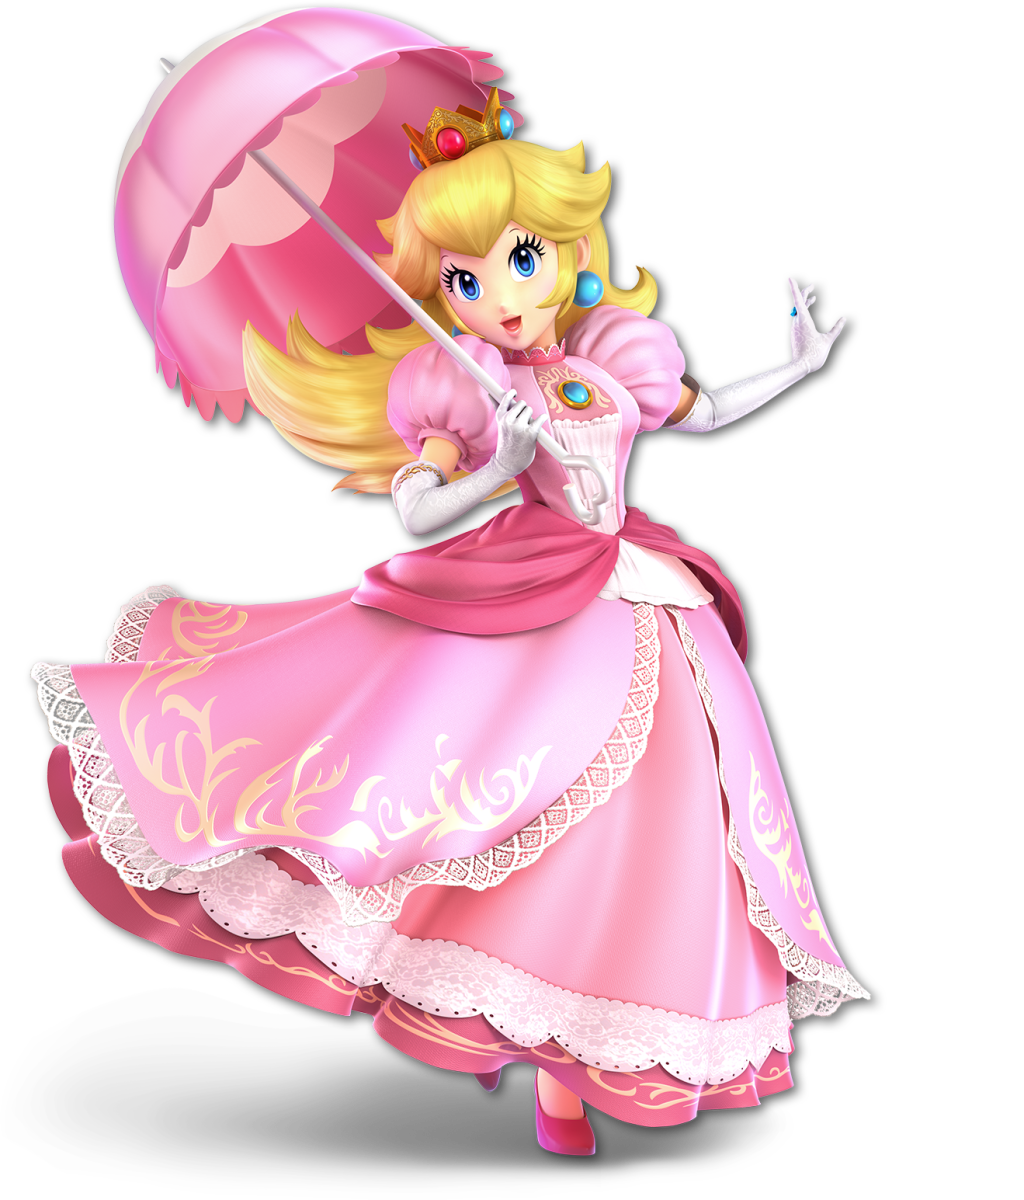 Princess Peach is notorious for getting kidnapped.